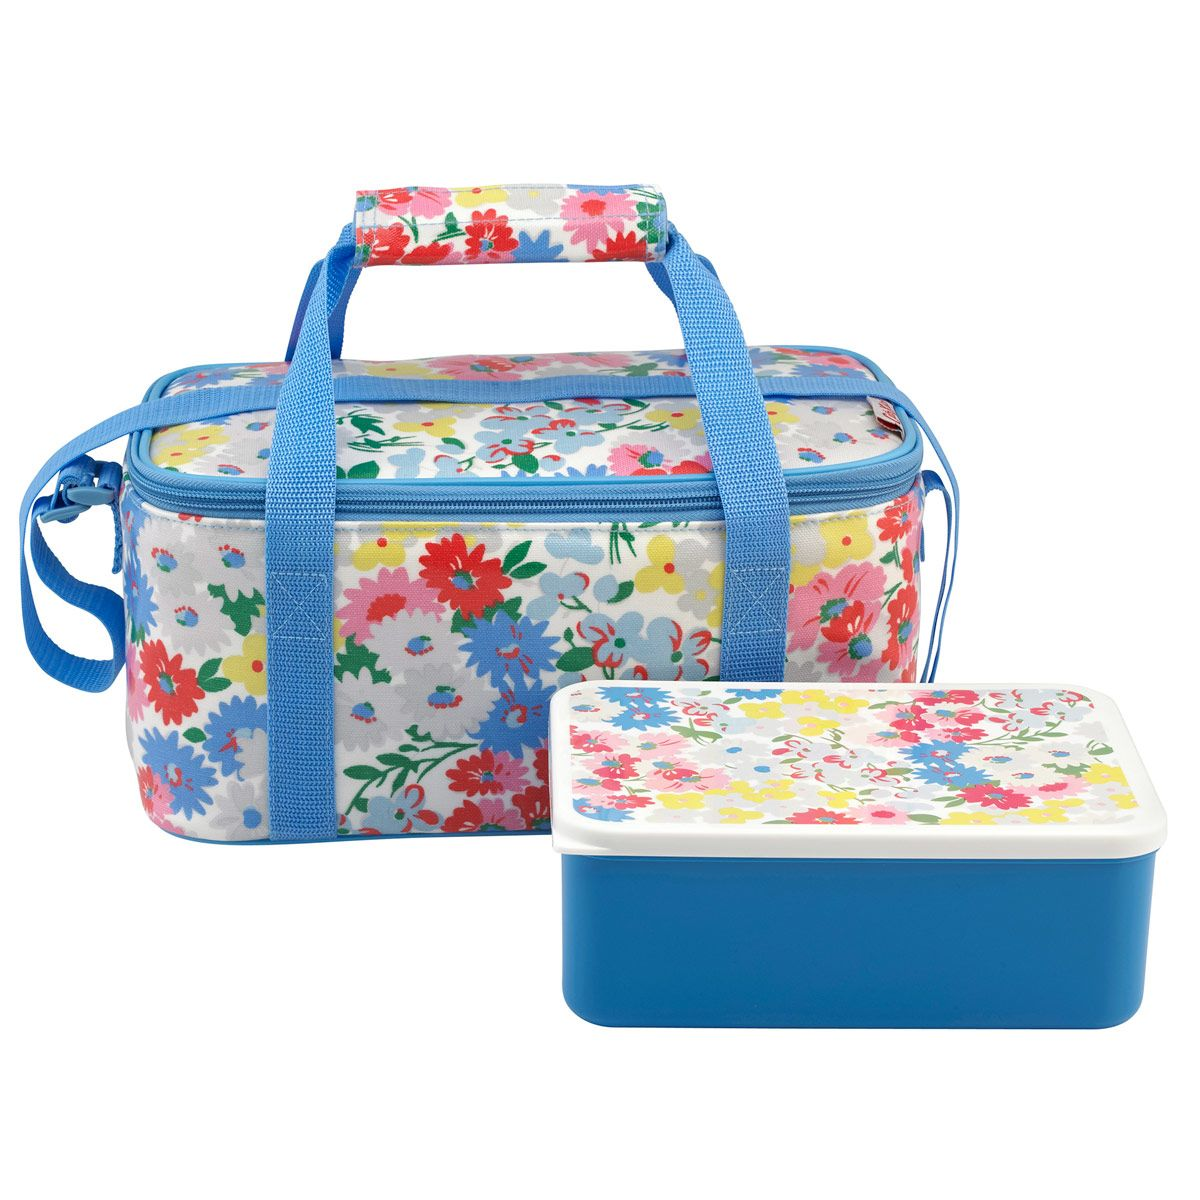 Daisy Bed Filled Mini Cool Bag Cath Kidston